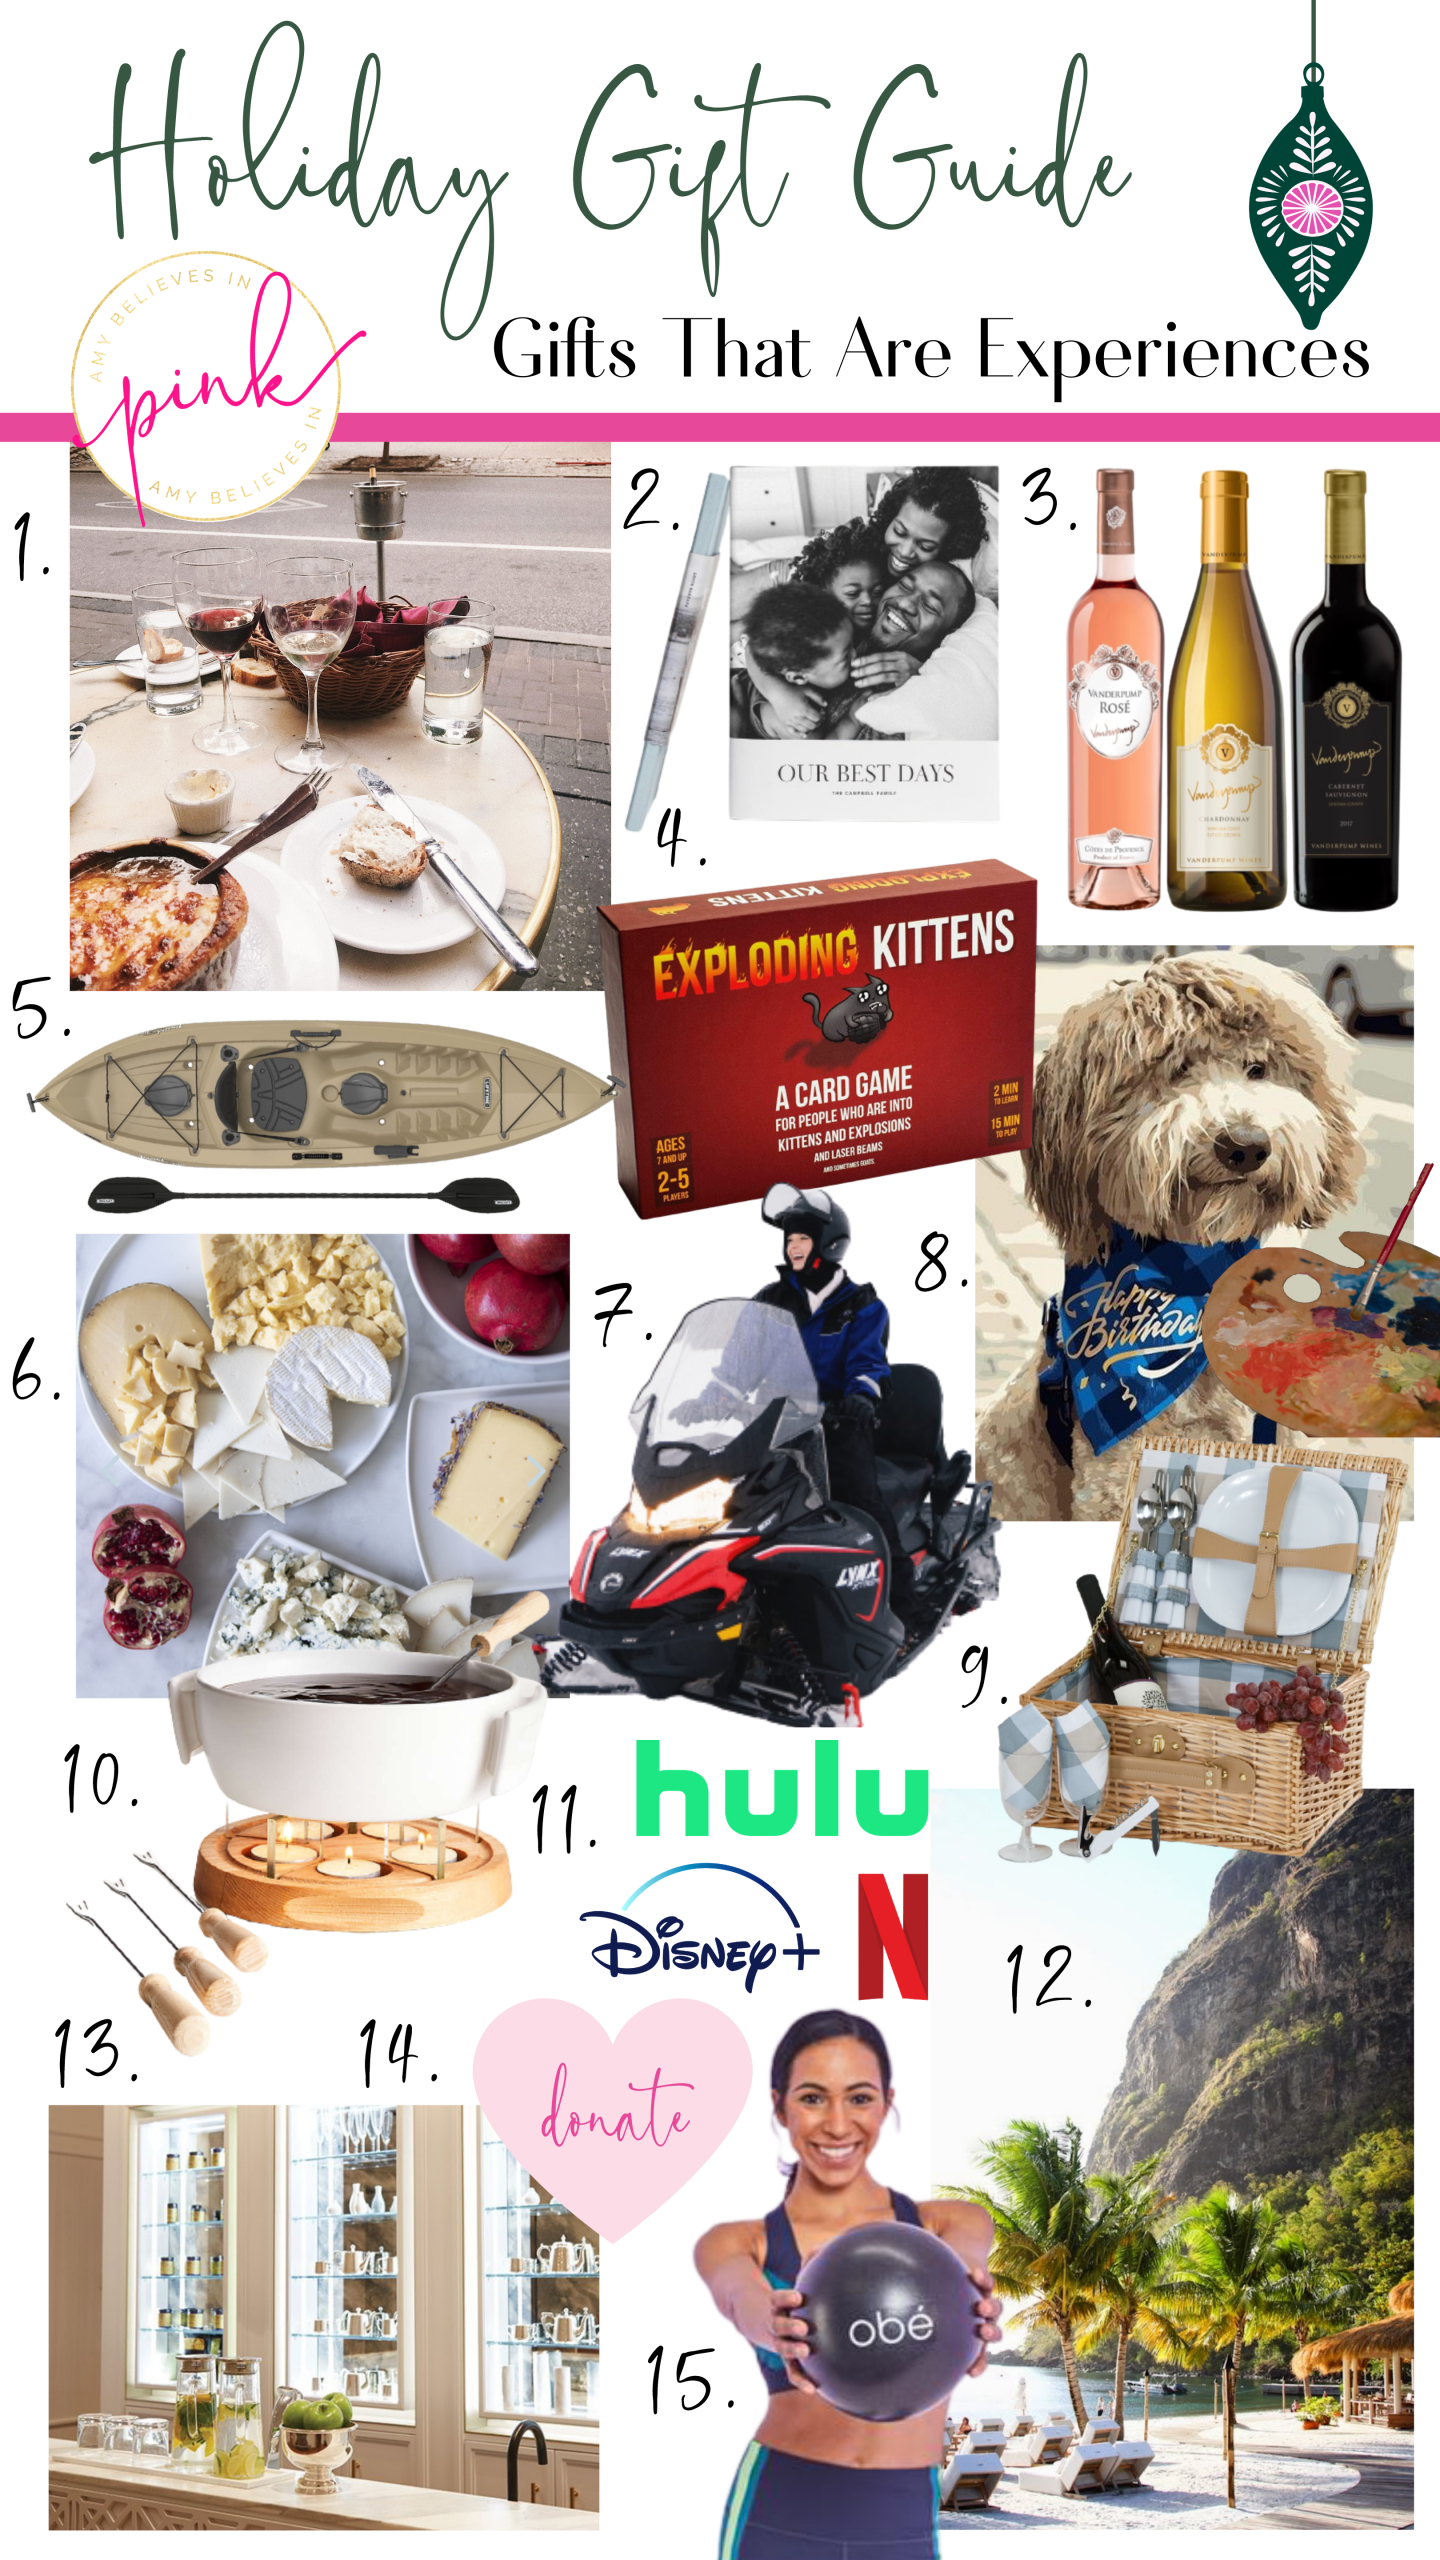 Holiday Gift Guide for Experiences or Activities